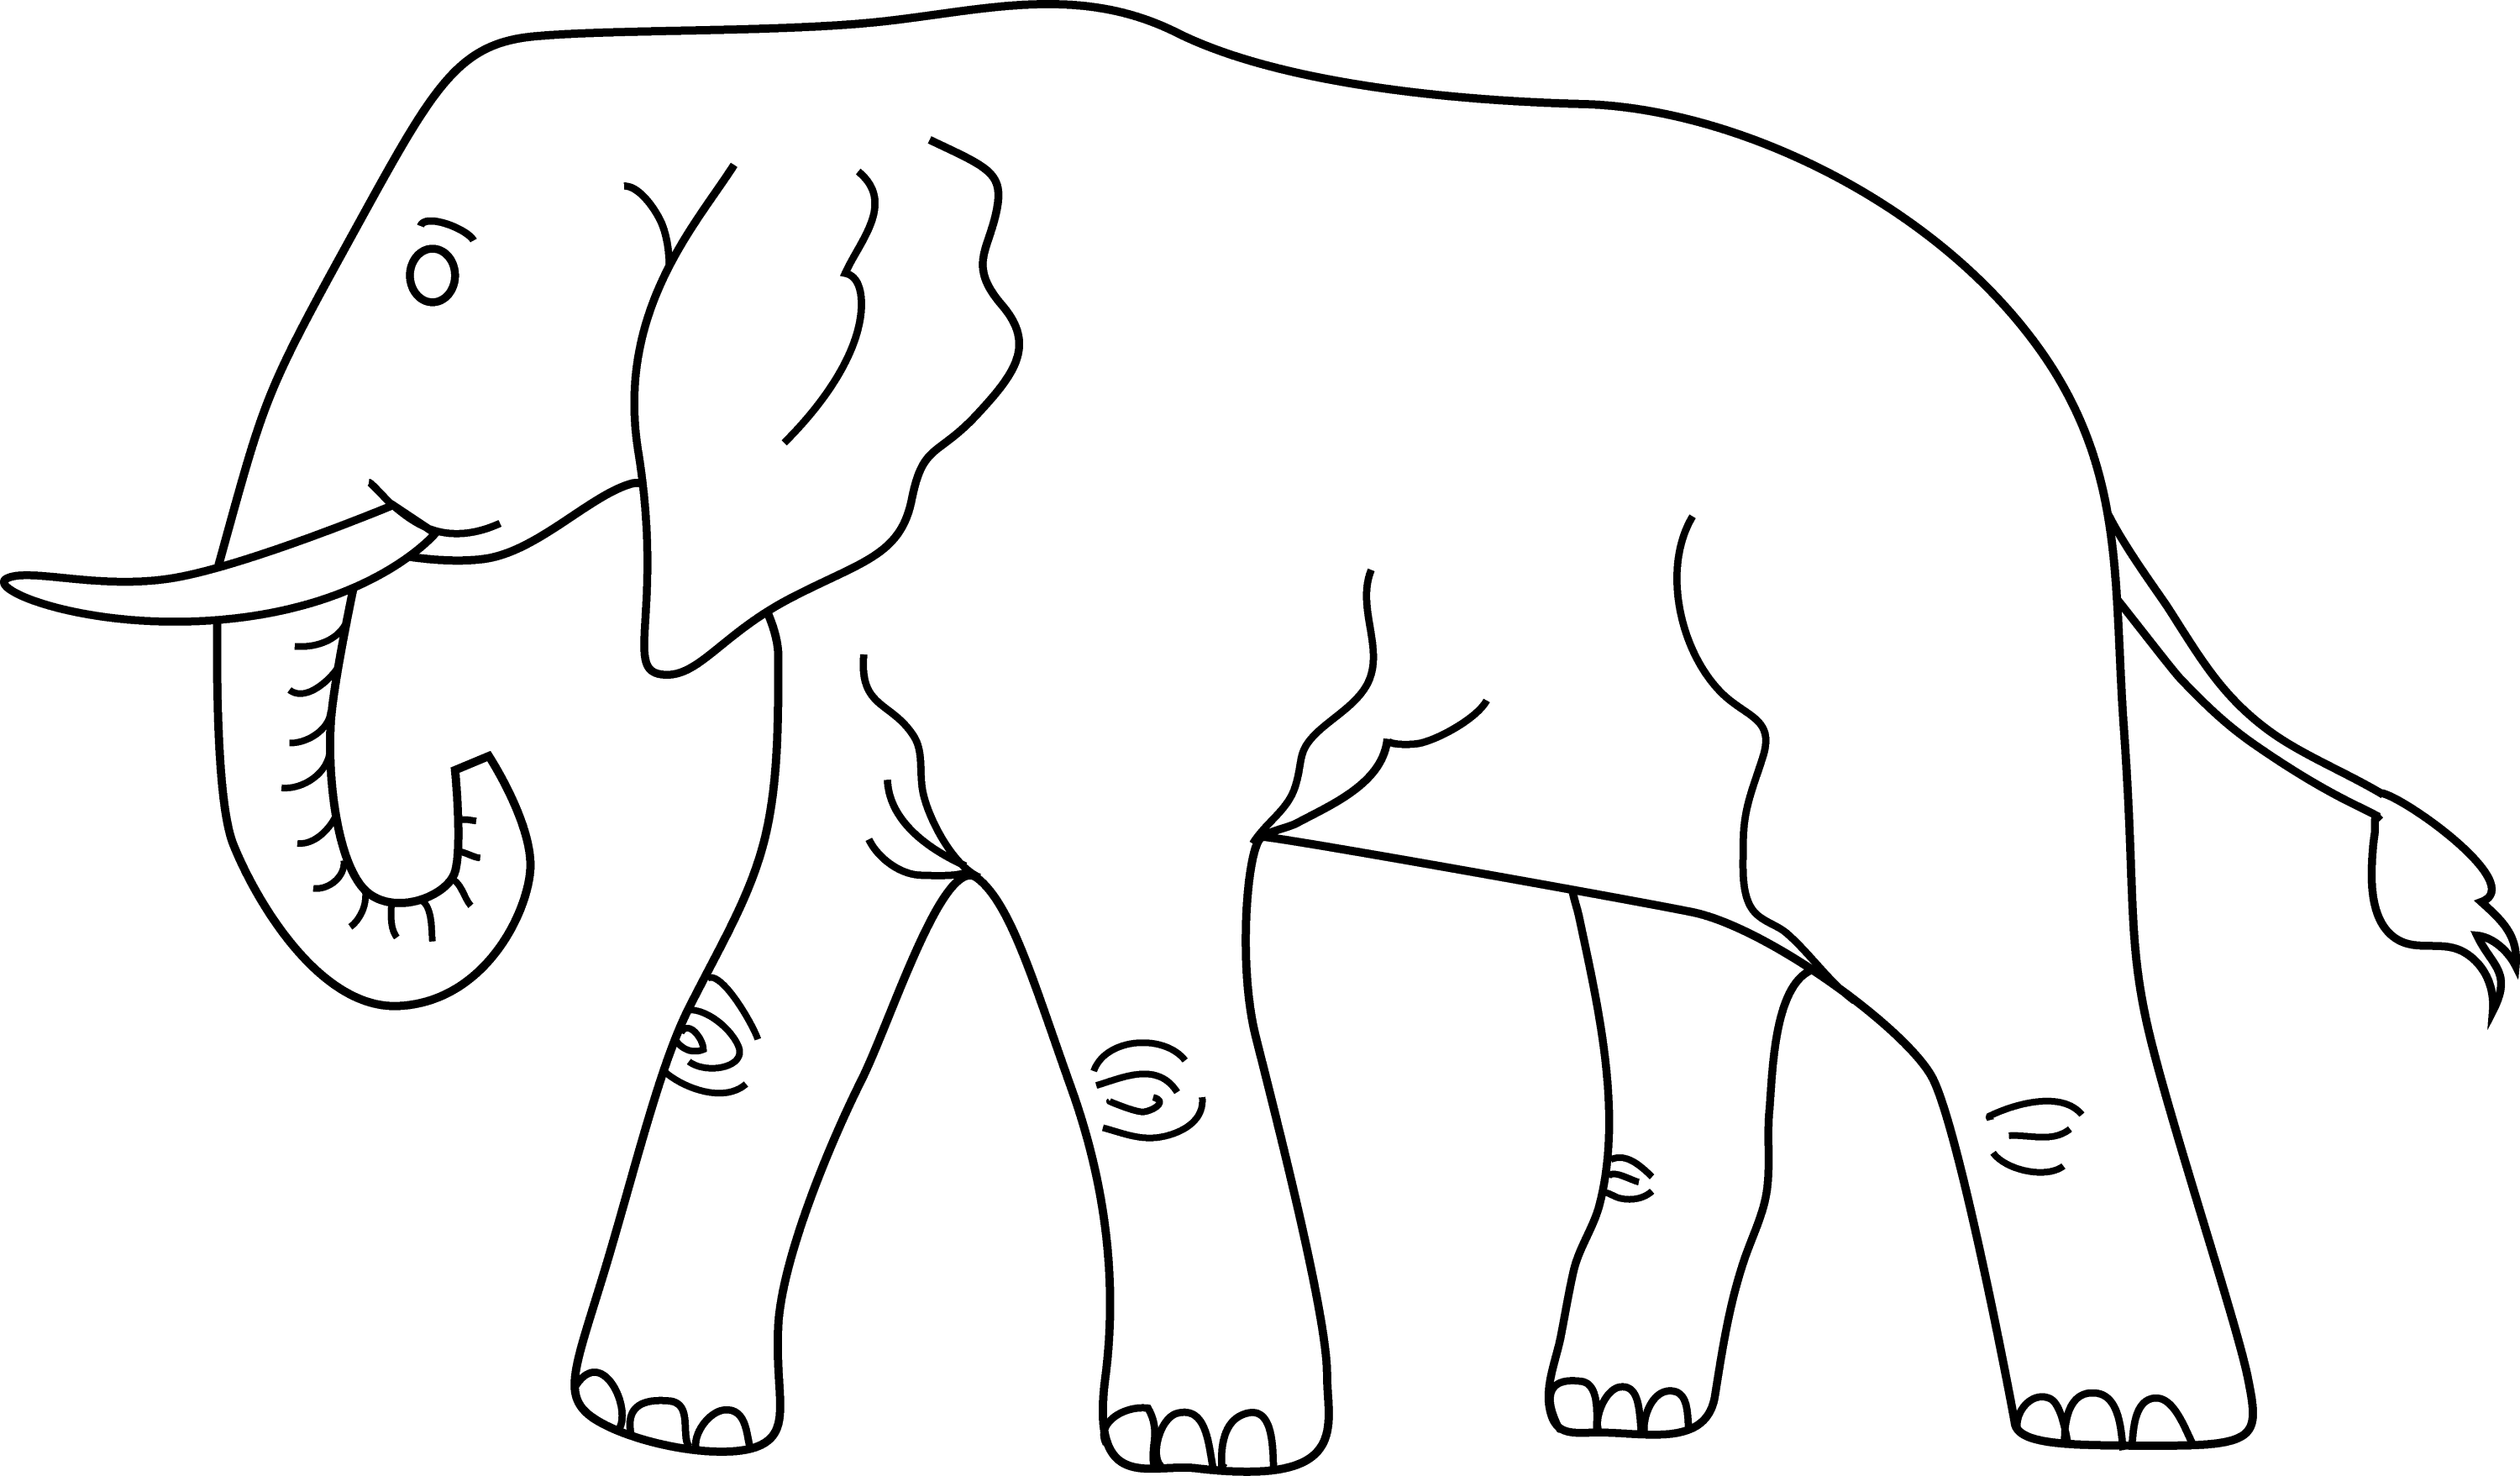 elephant outline coloring page baby elephant head clipart black and white 20 free outline page coloring elephant